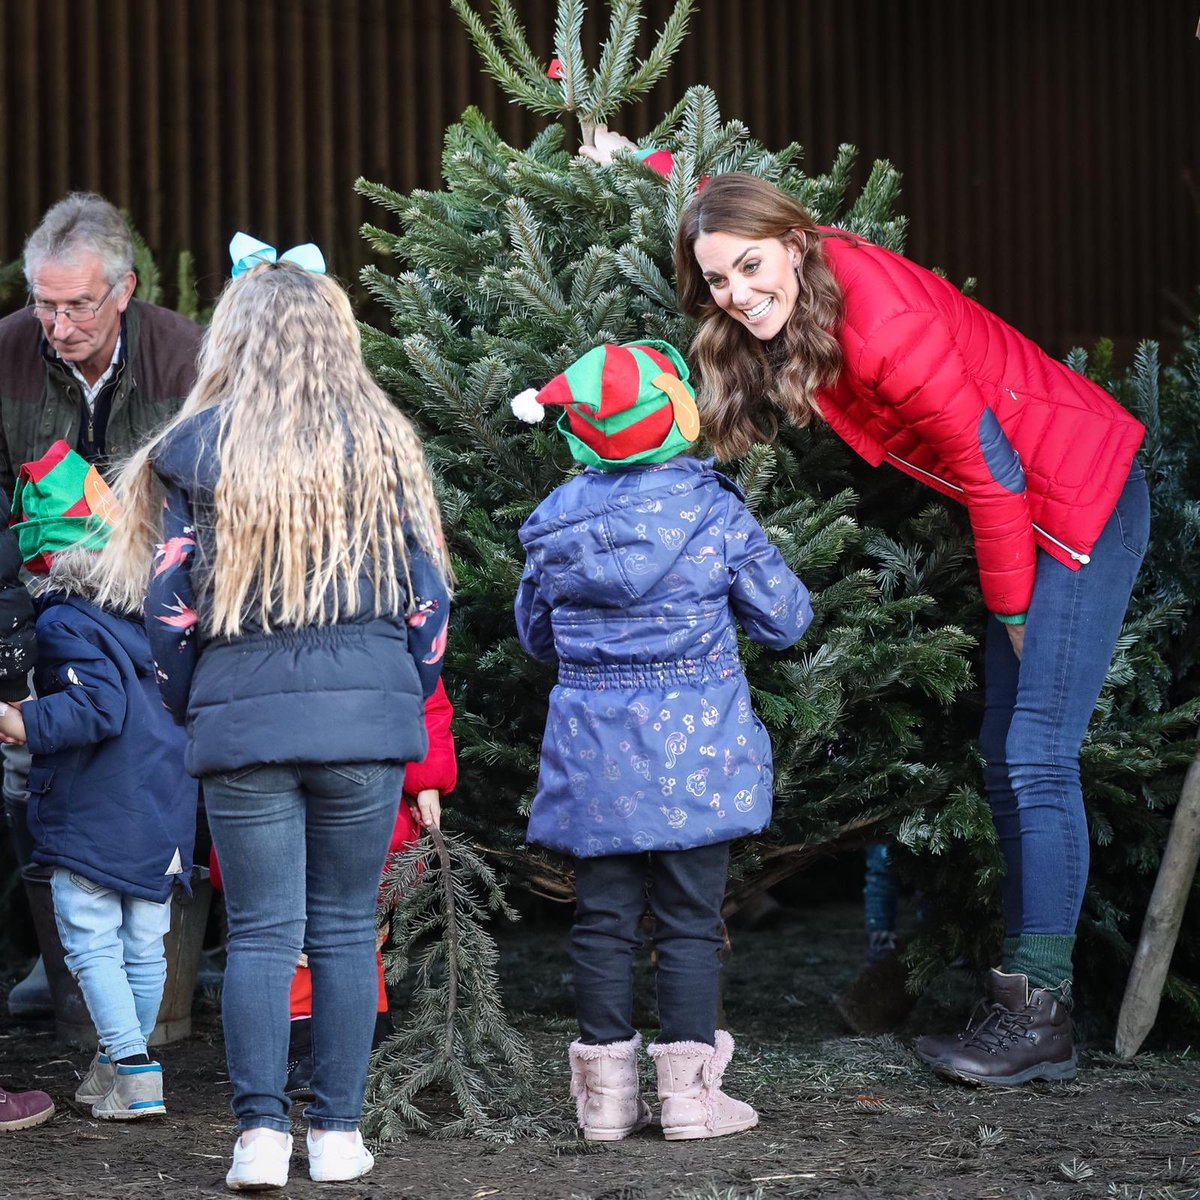 To mark her new patronage of @family_action, The Duchess visited a Christmas tree farm in Buckinghamshire to join families and and children who are supported by the charity.